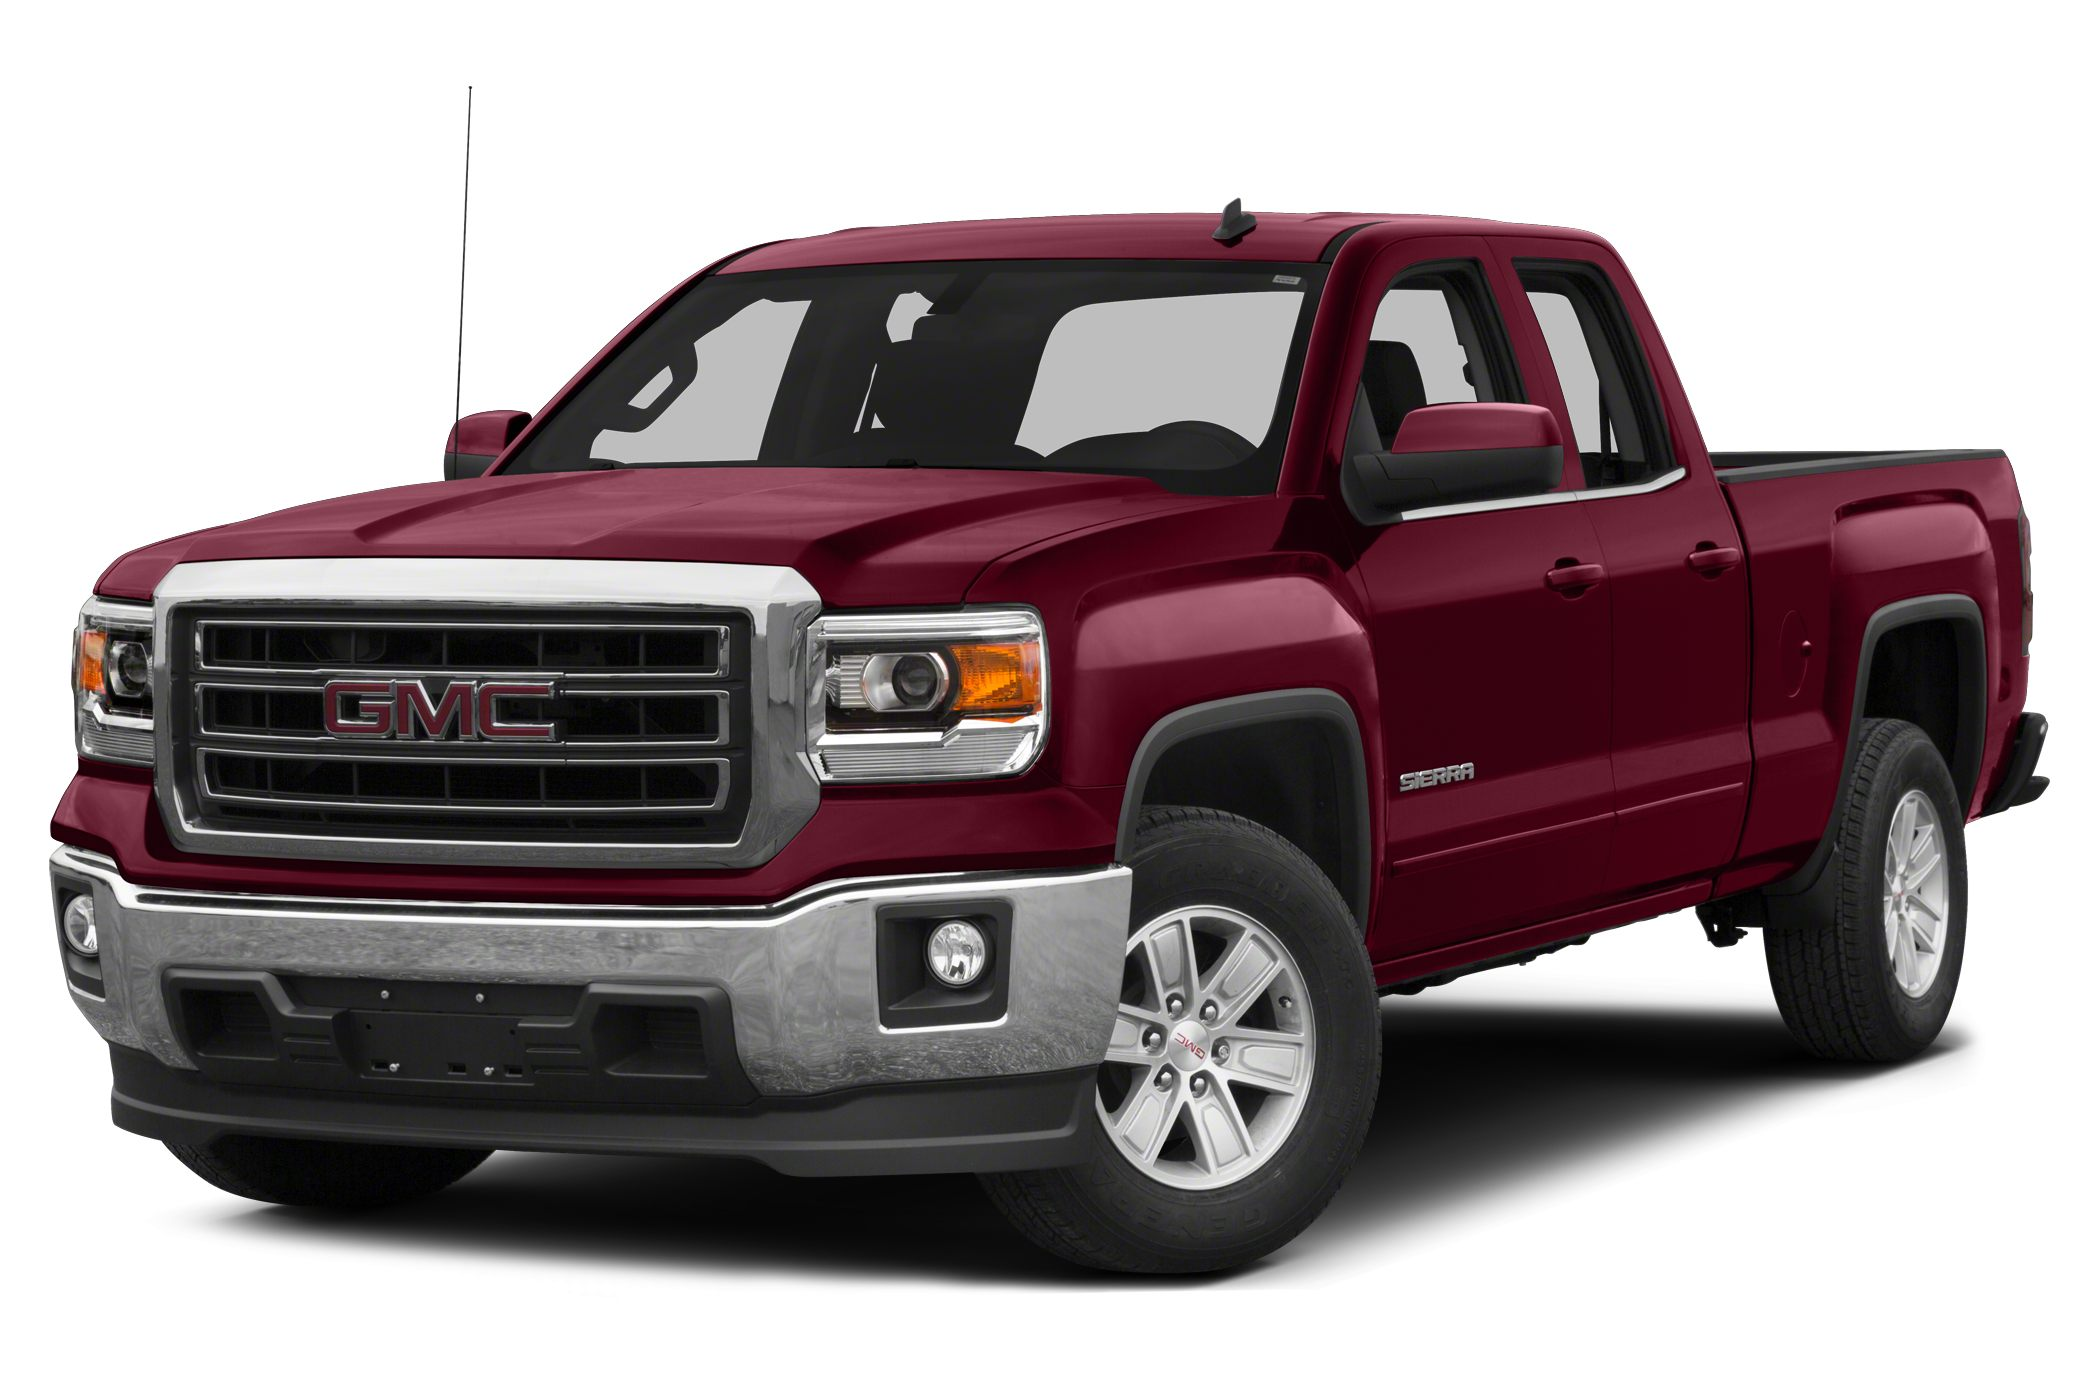 2014 GMC Sierra 1500 SLE Regular Cab Pickup for sale in Melbourne for $33,955 with 24,840 miles